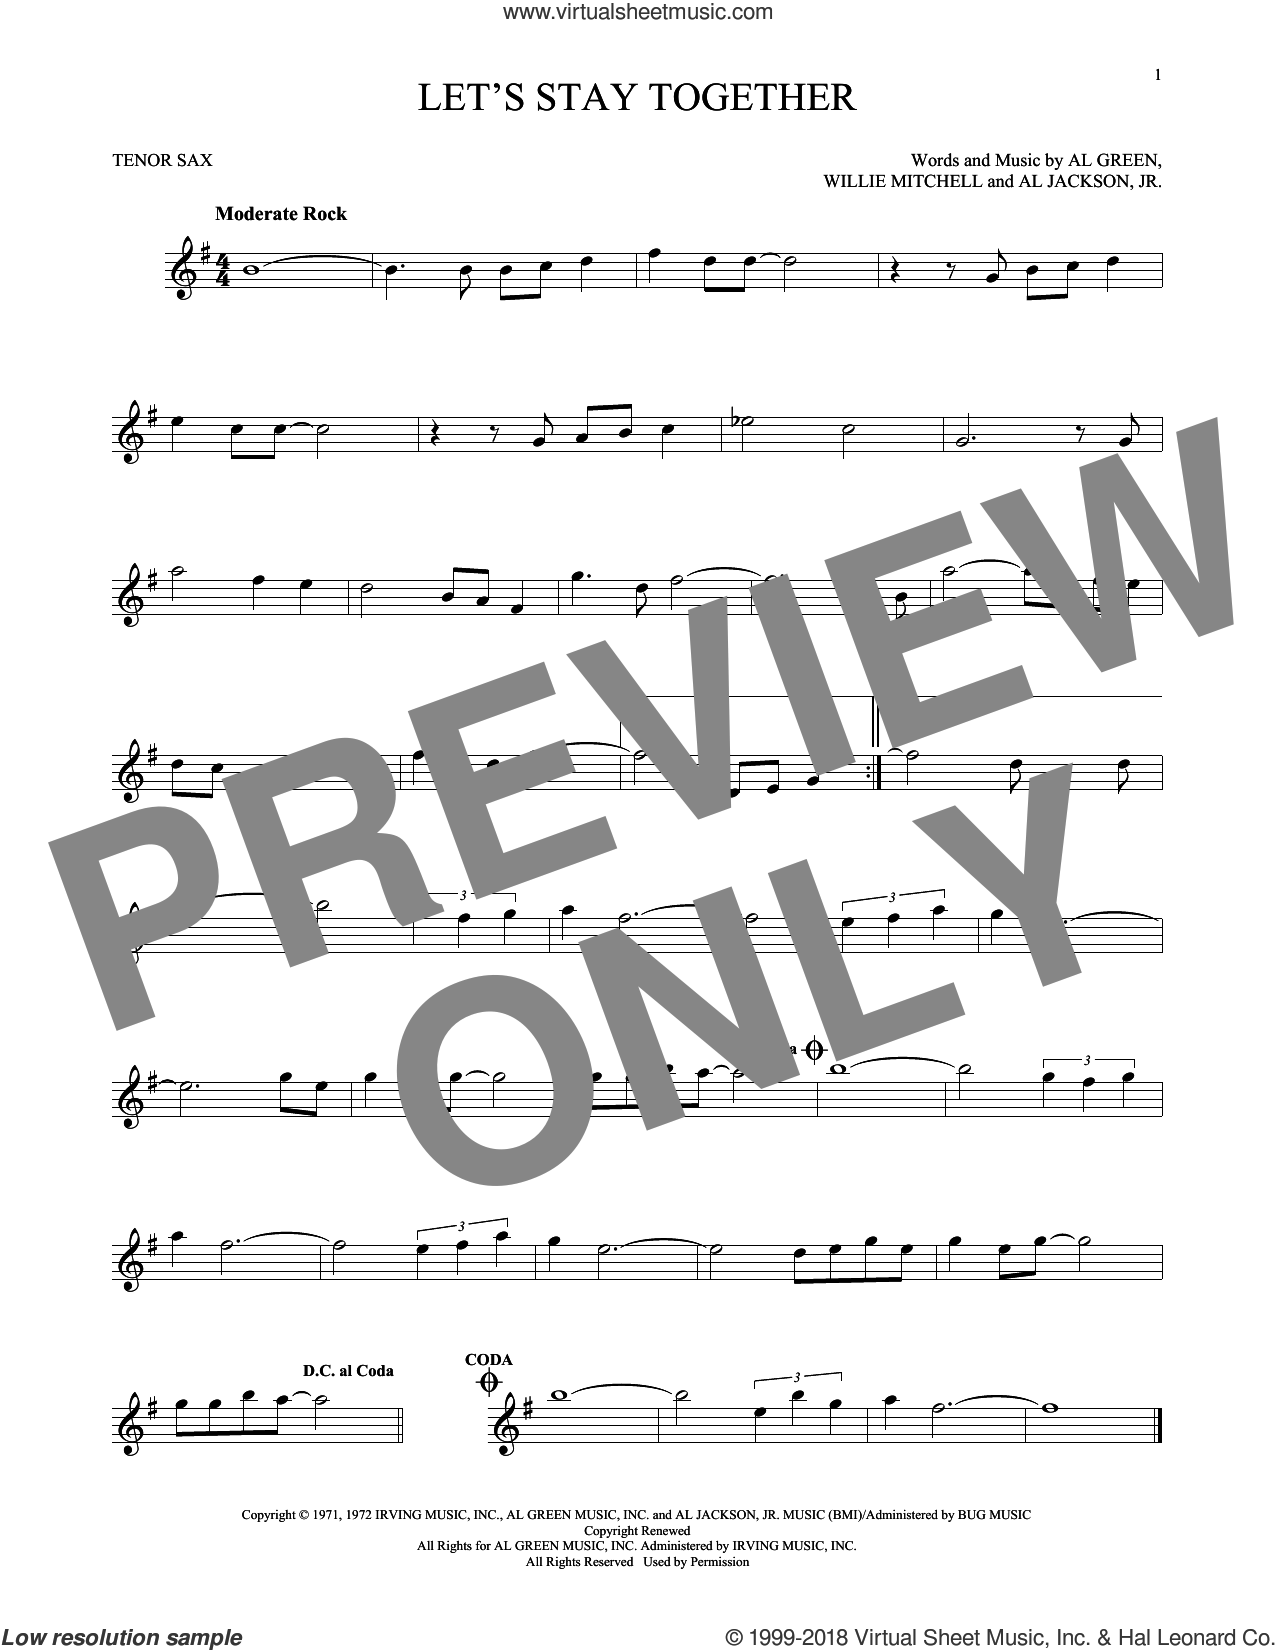 Let's Stay Together sheet music for tenor saxophone solo by Willie Mitchell, Al Green and Al Jackson, Jr.. Score Image Preview.